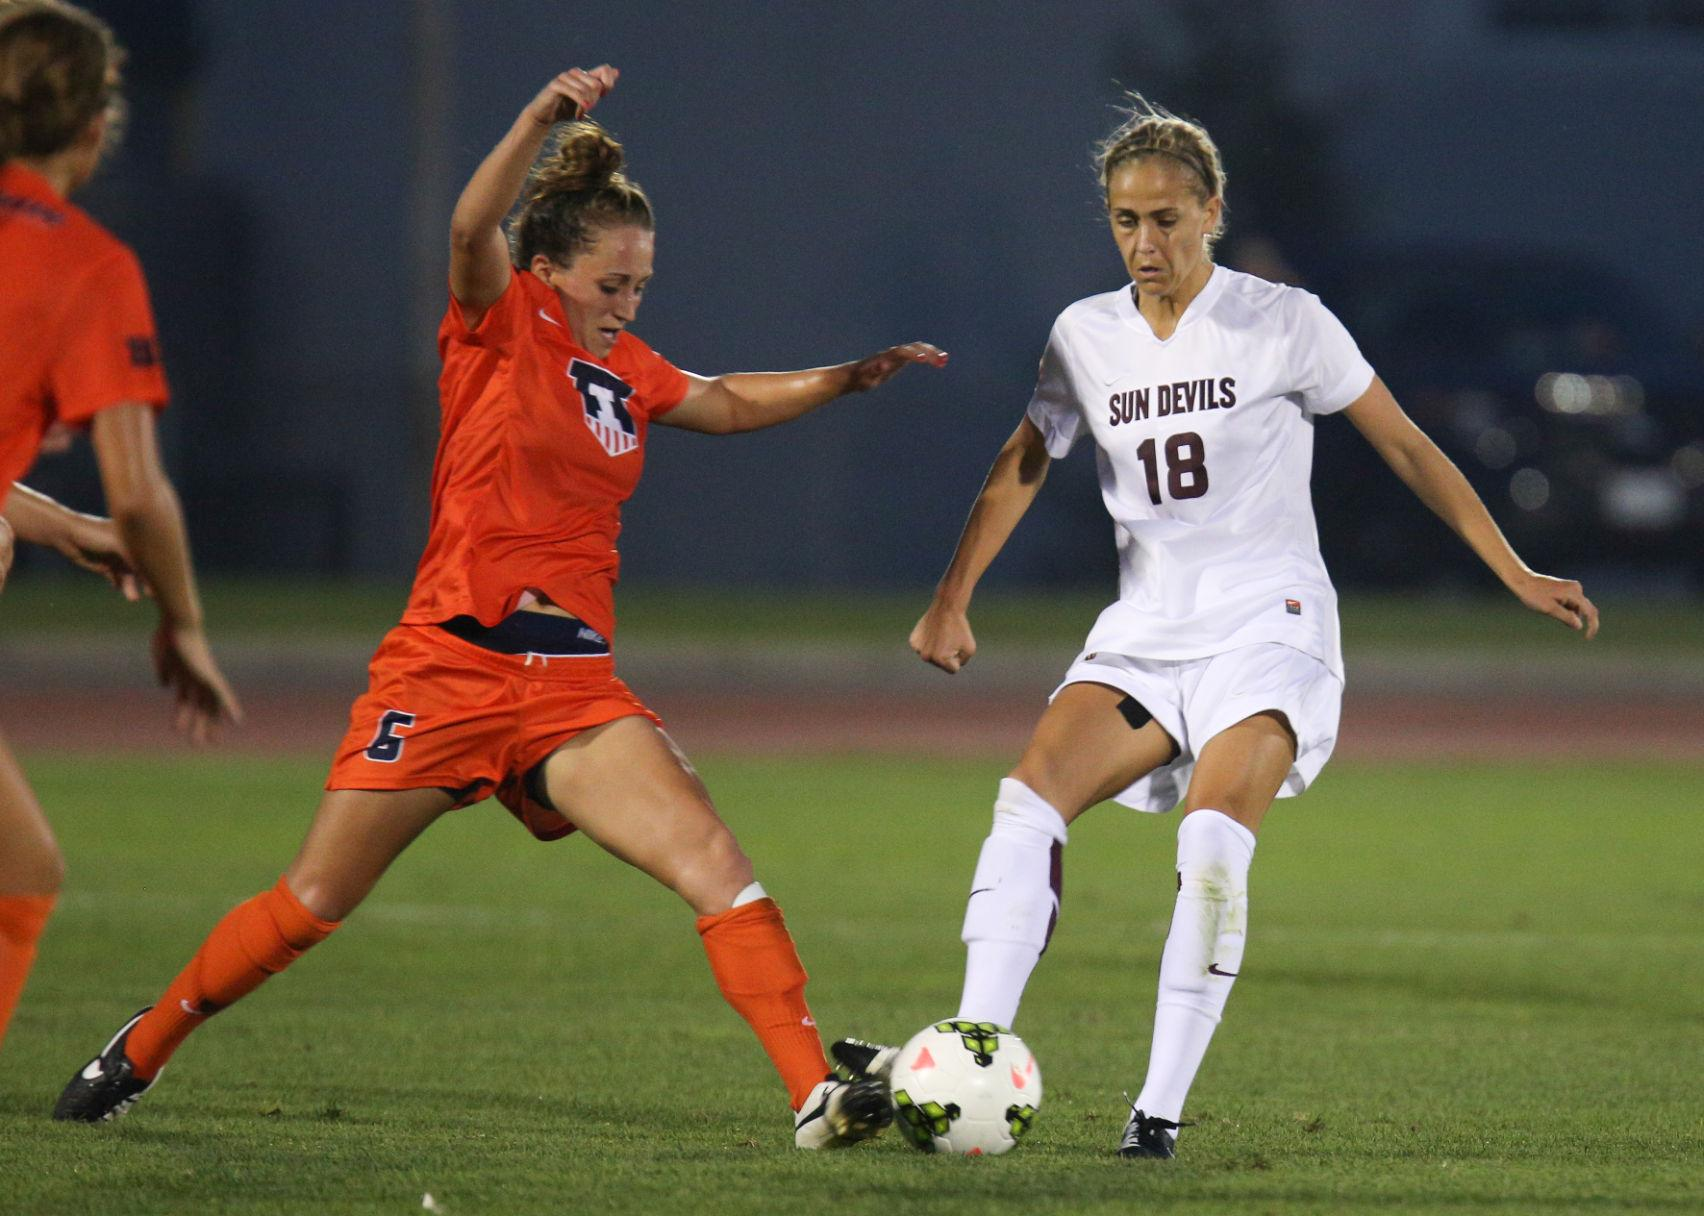 Illinois' Reagan Robishaw challenges for the ball during a game against Arizona State on Aug. 29. The Illini have lost their last two games against Penn State and Northwestern.